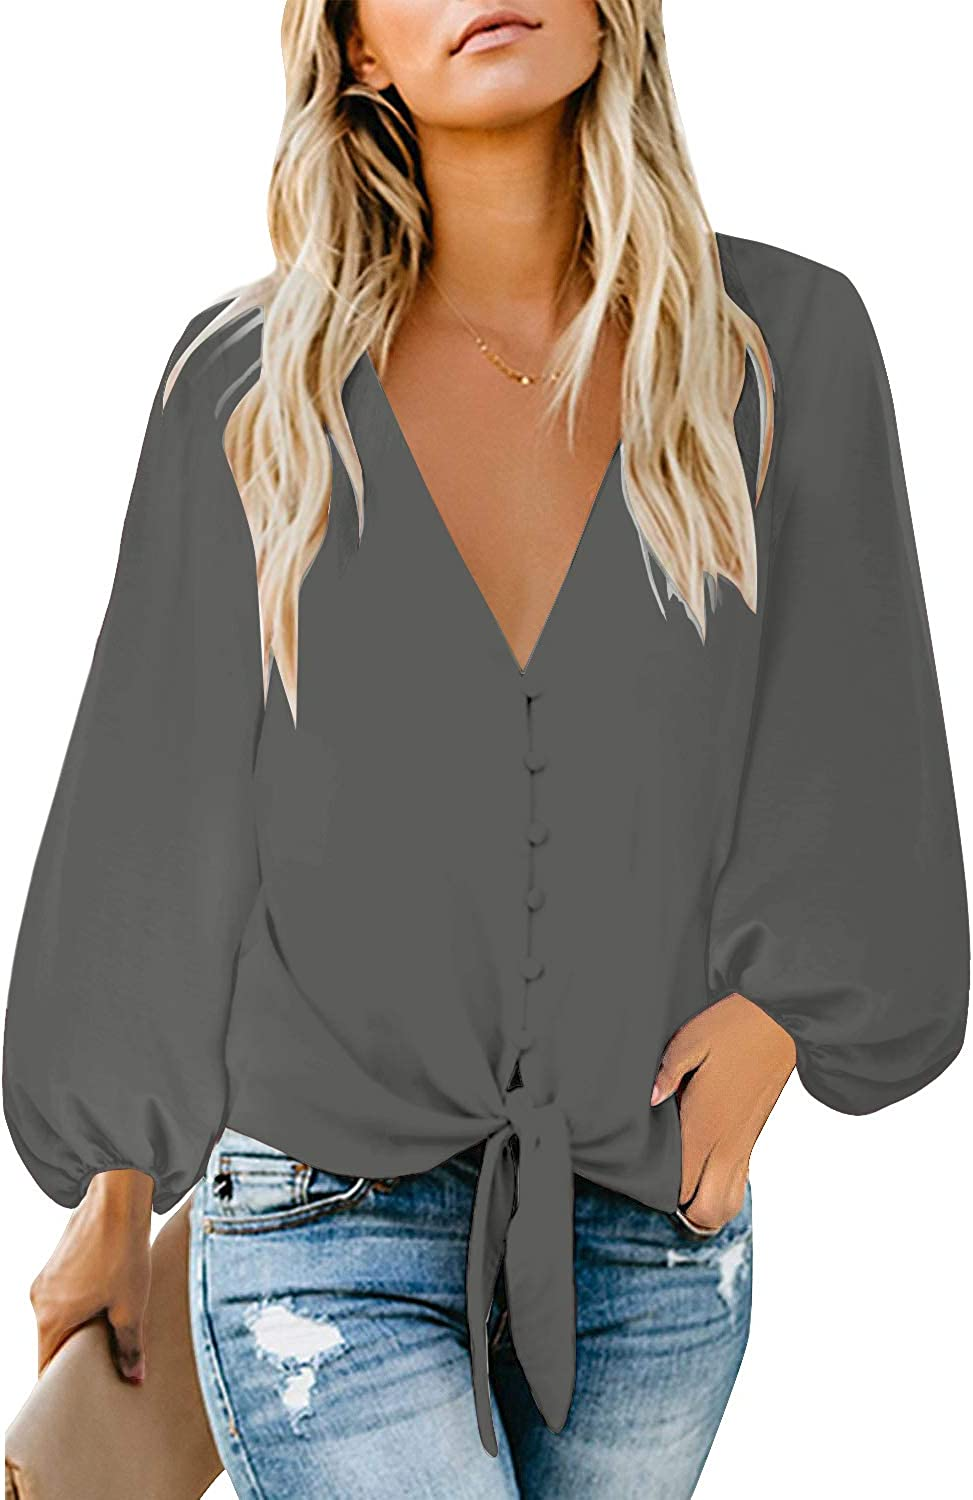 luvamia Women's Casual Long Balloon Sleeve V Neck Loose Button Down Shirts Tie Knot Tops Blouse